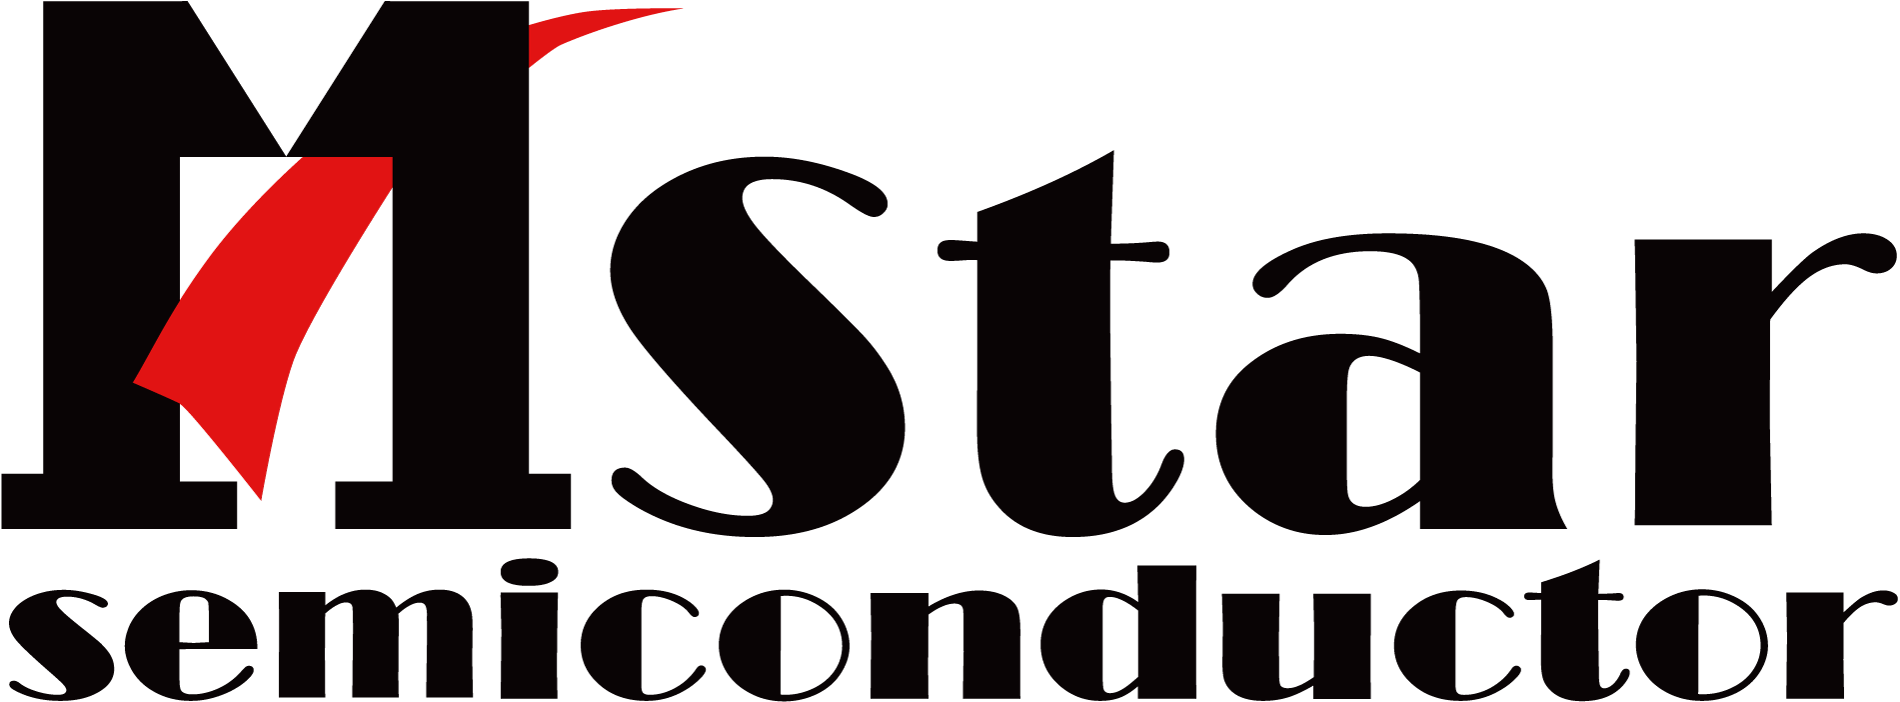 MStar Semiconductor